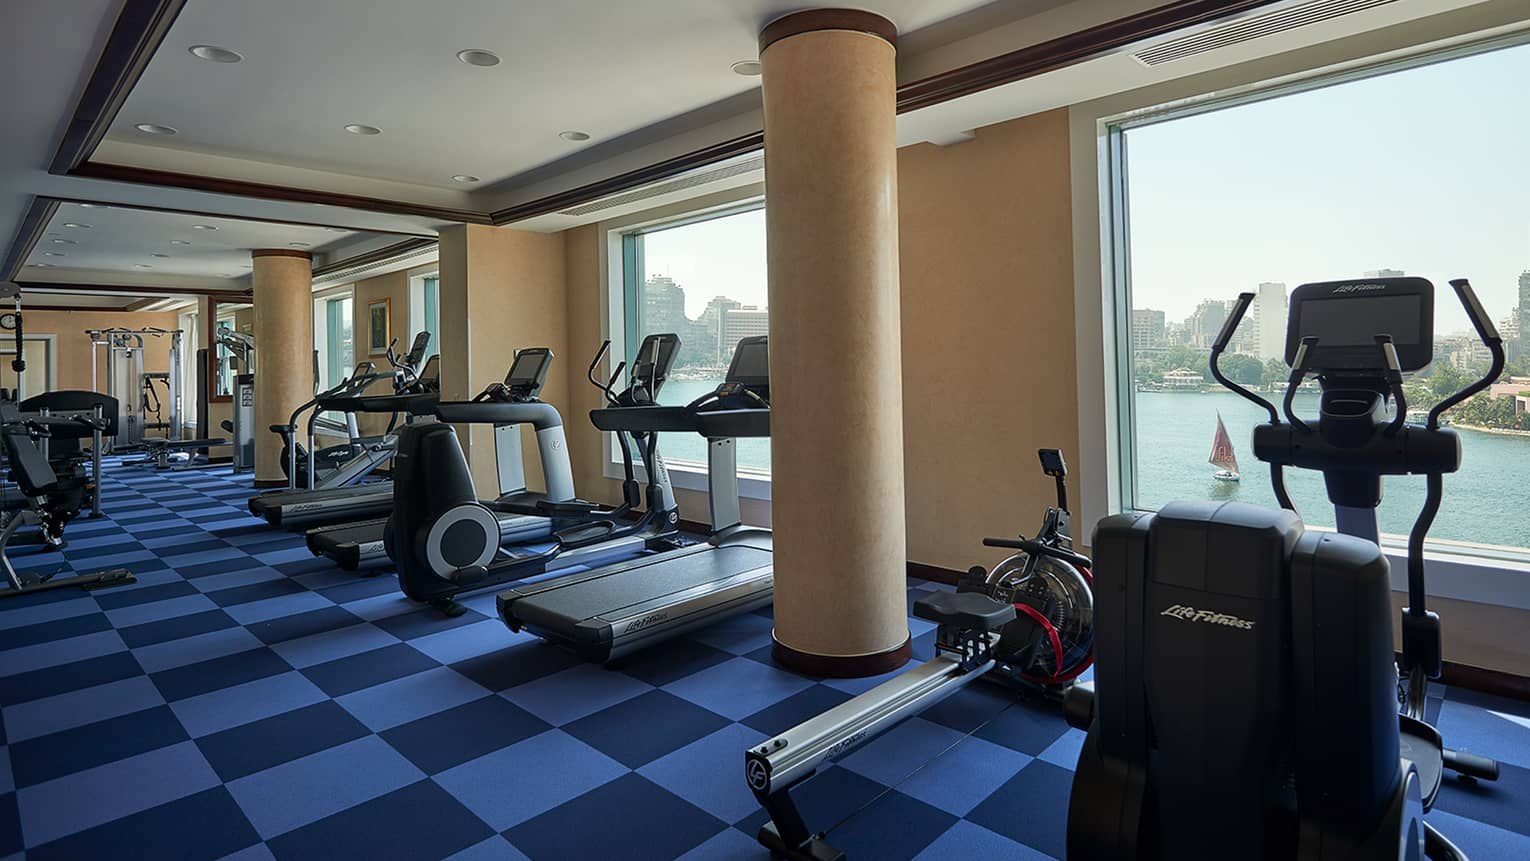 Row of cardio machines in front of window overlooking Nile river